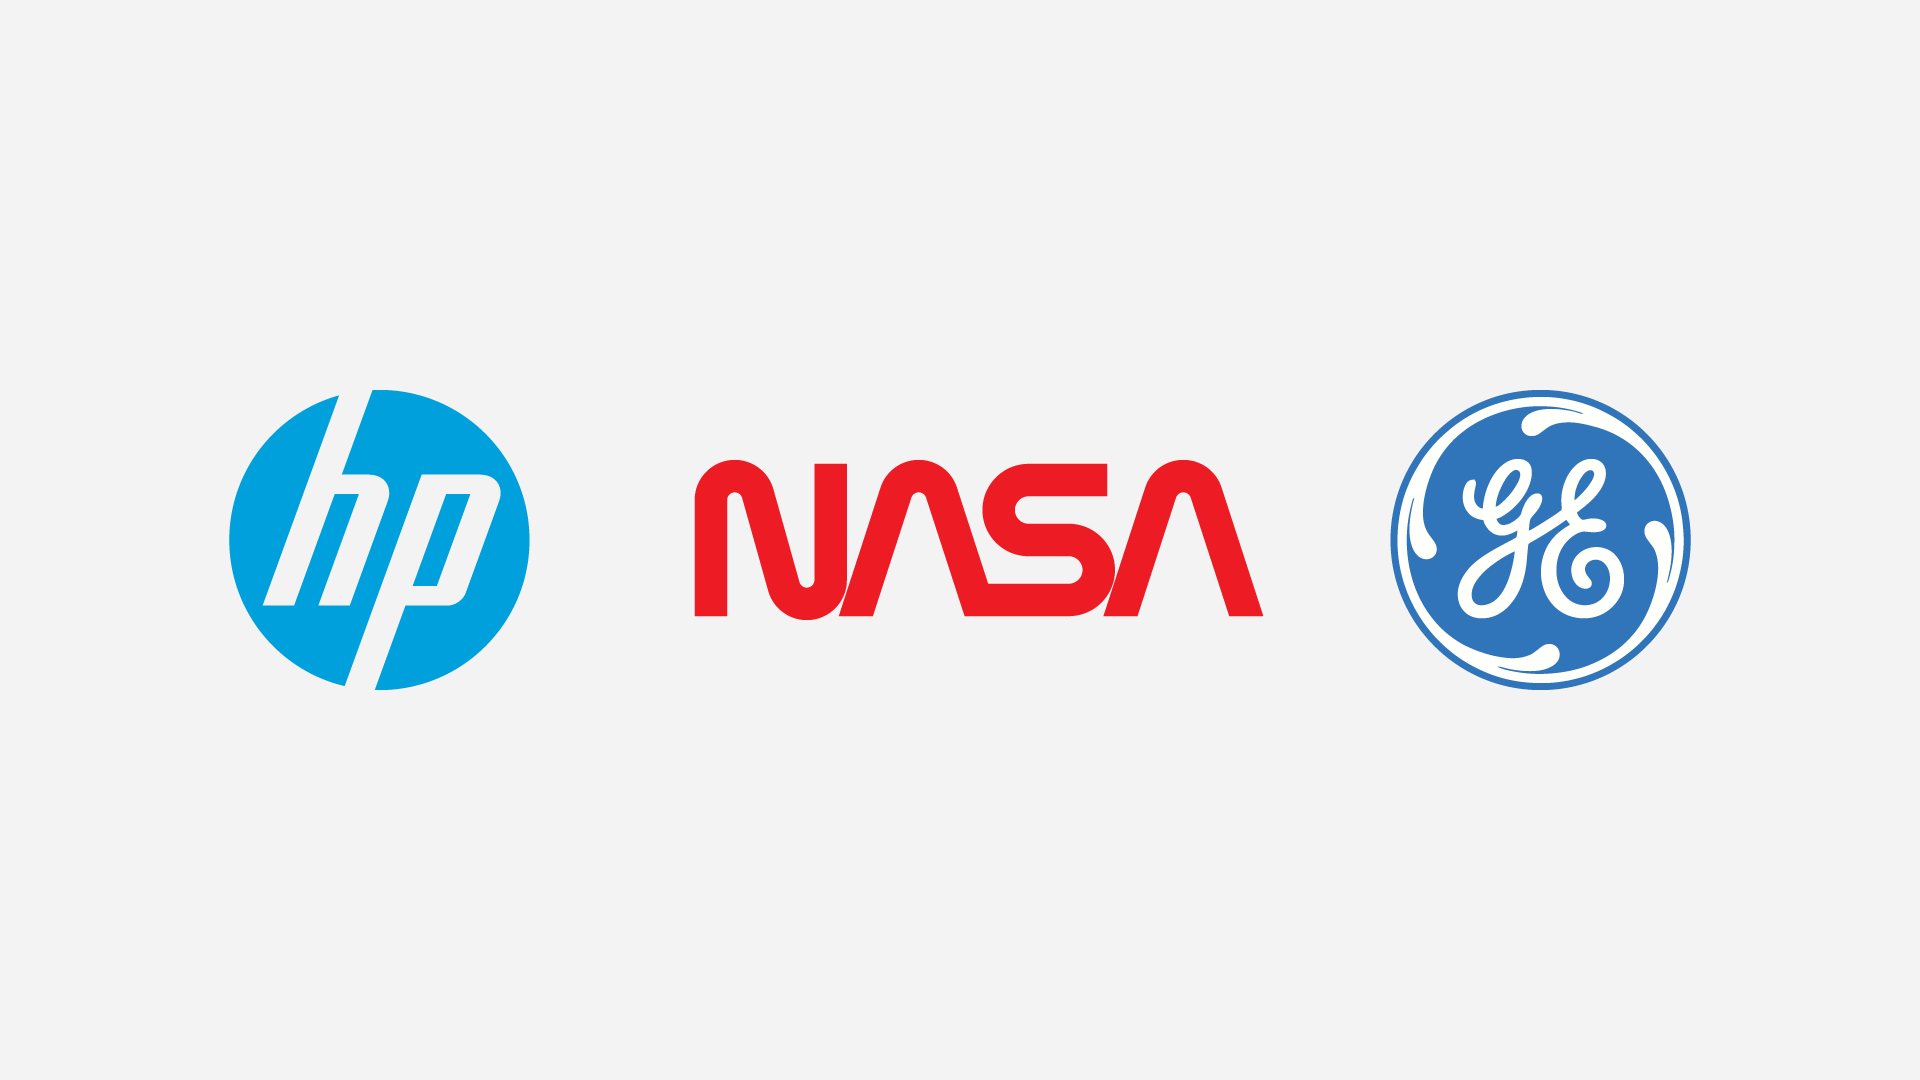 Classic Lettermark Logos for Hewlett Packard, NASA and General Electric